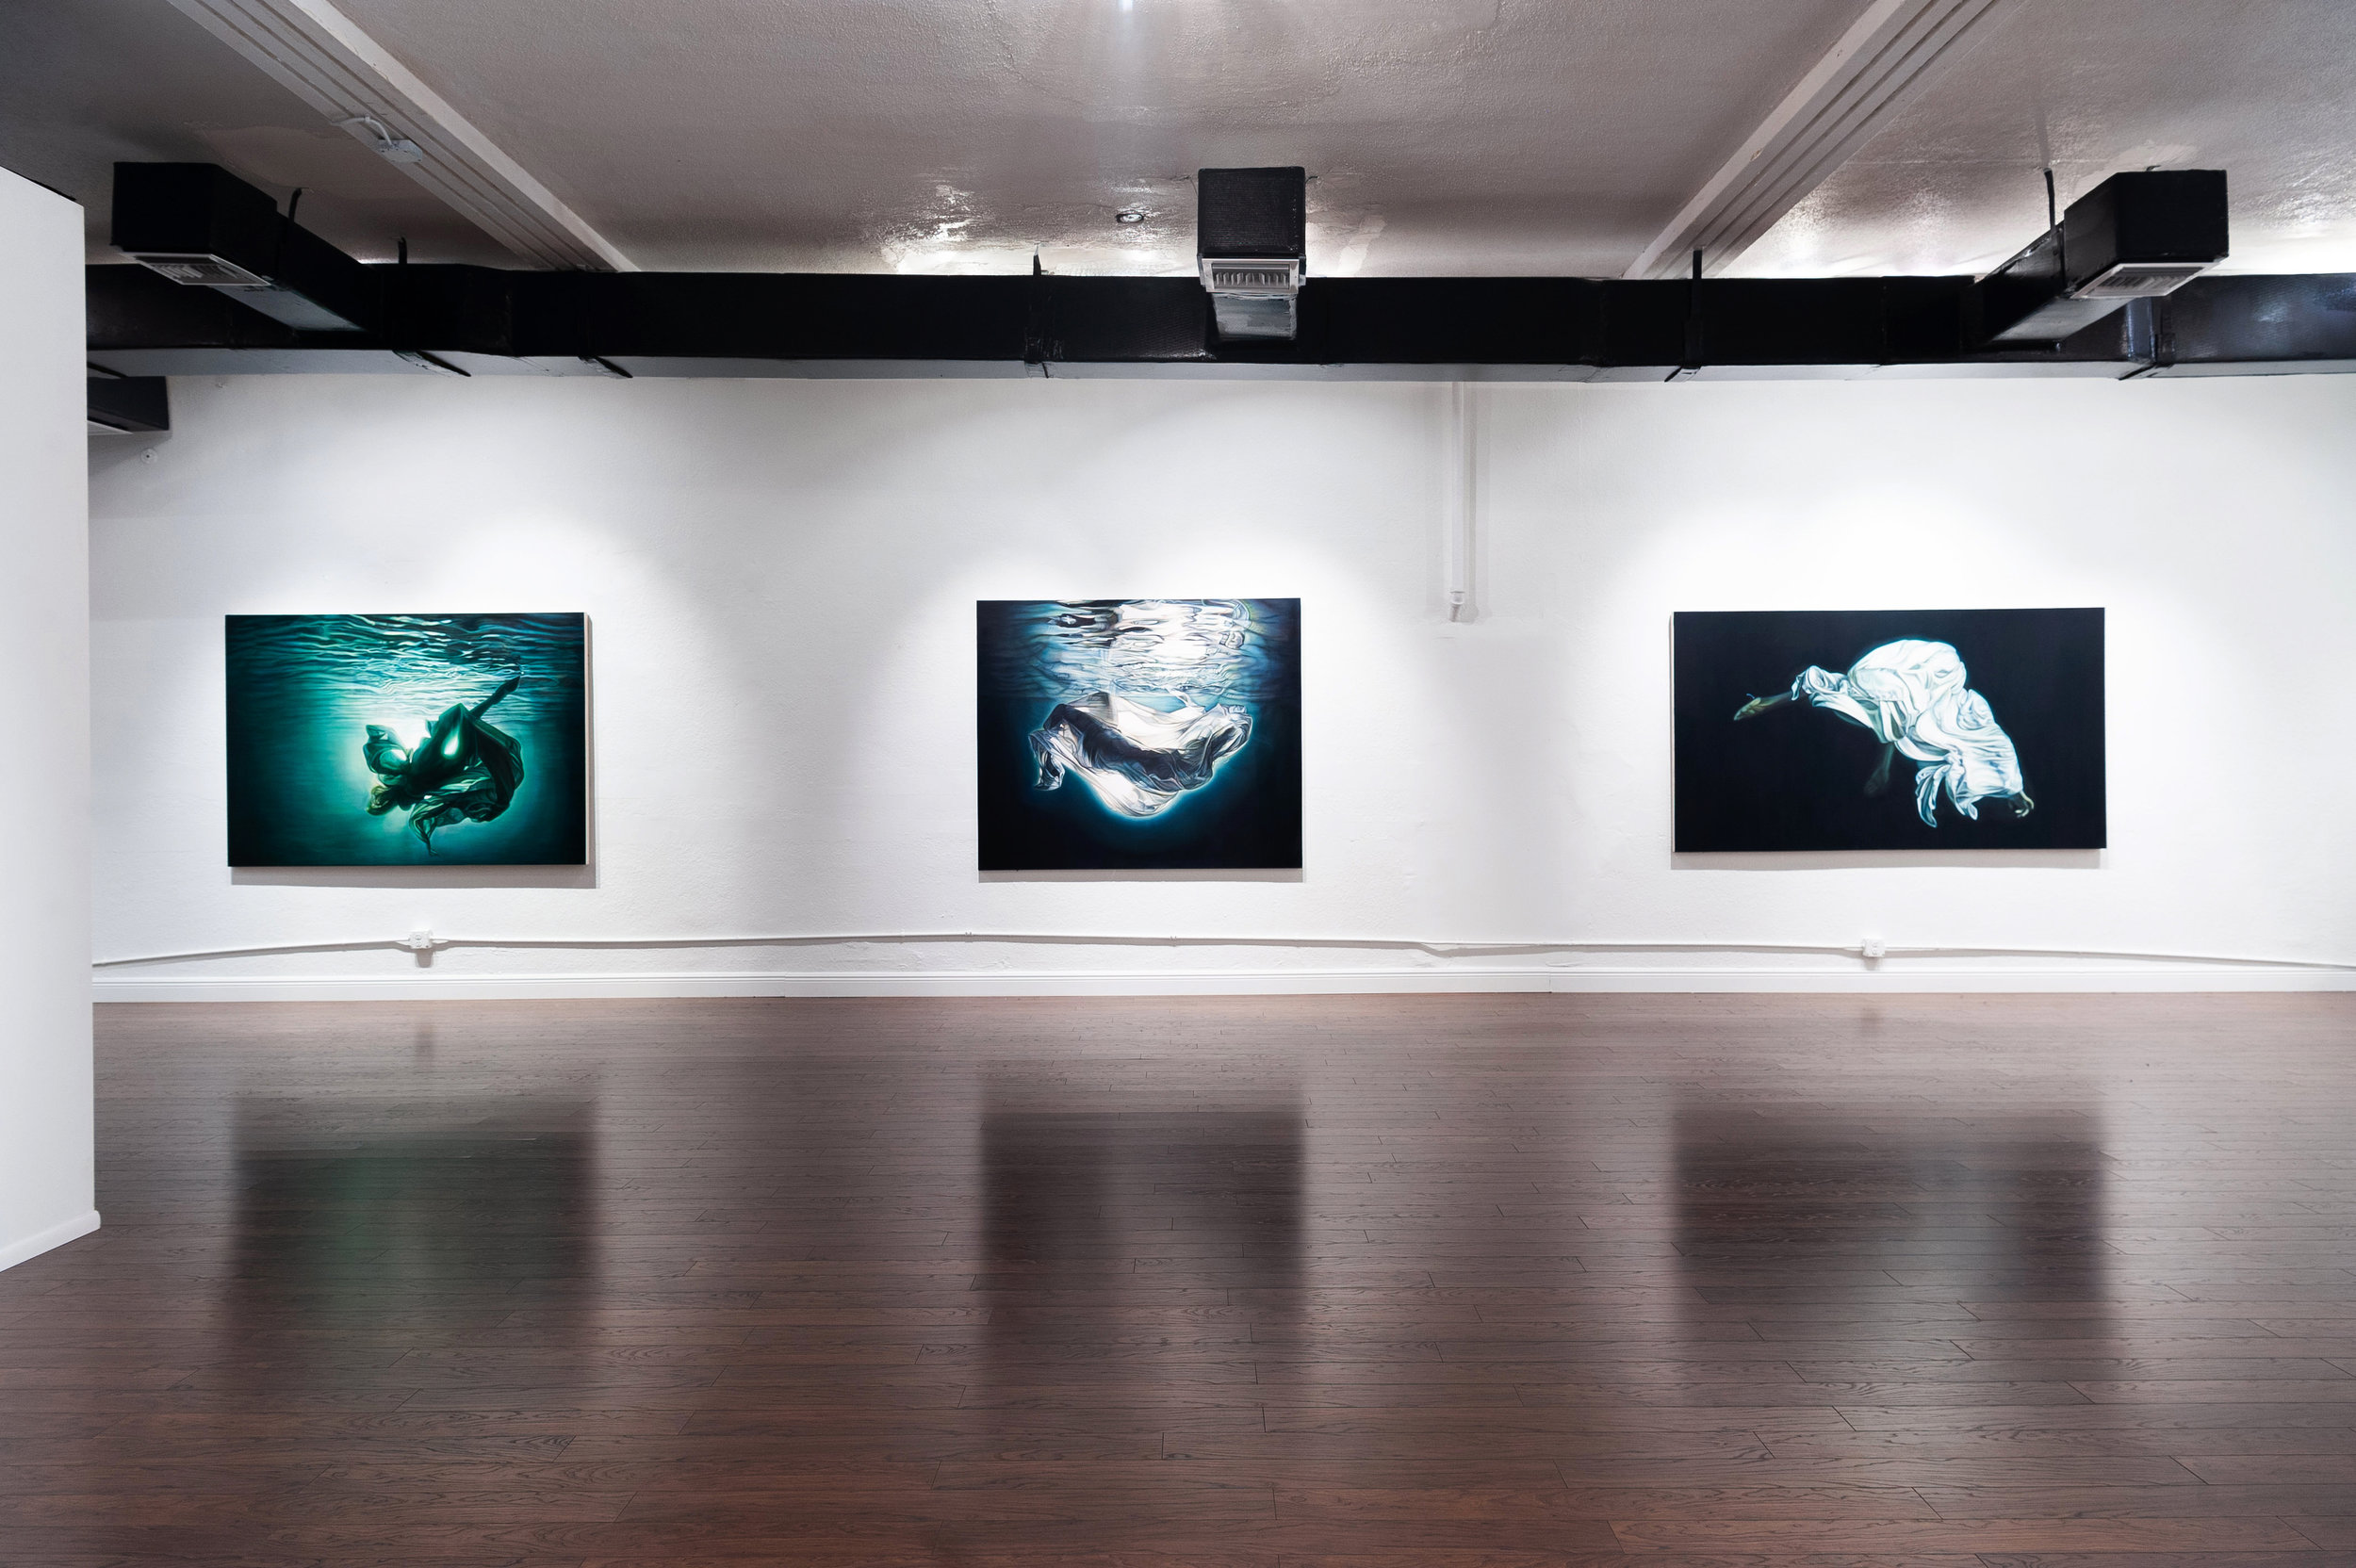 Ana Teresa Fernández: Of Bodies and Borders , installation view, Gallery Wendi Norris Offsite, 6391 NW Second Avenue, Miami, FL, November 2 - December 8, 2018, photography: Sergi Alexander / Eyeworks Production